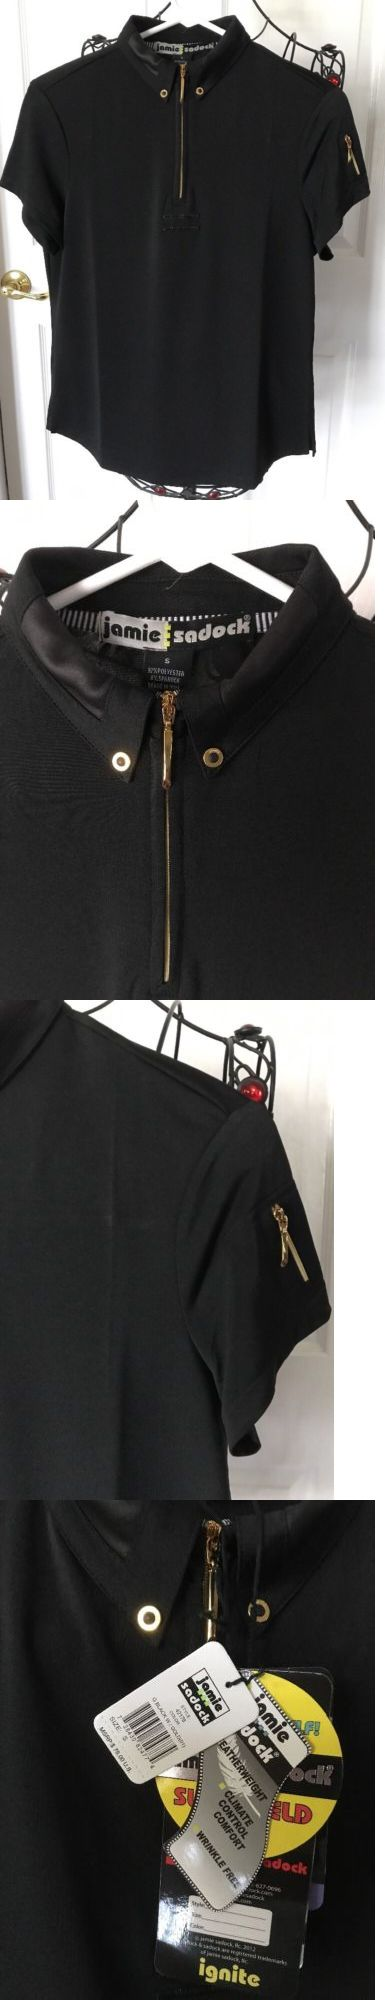 Shirts Tops and Sweaters 181149: Jamie Sadock Woman S Short Slv Golf Top Small Black Gold Nwt 78.00 -> BUY IT NOW ONLY: $39.99 on eBay!